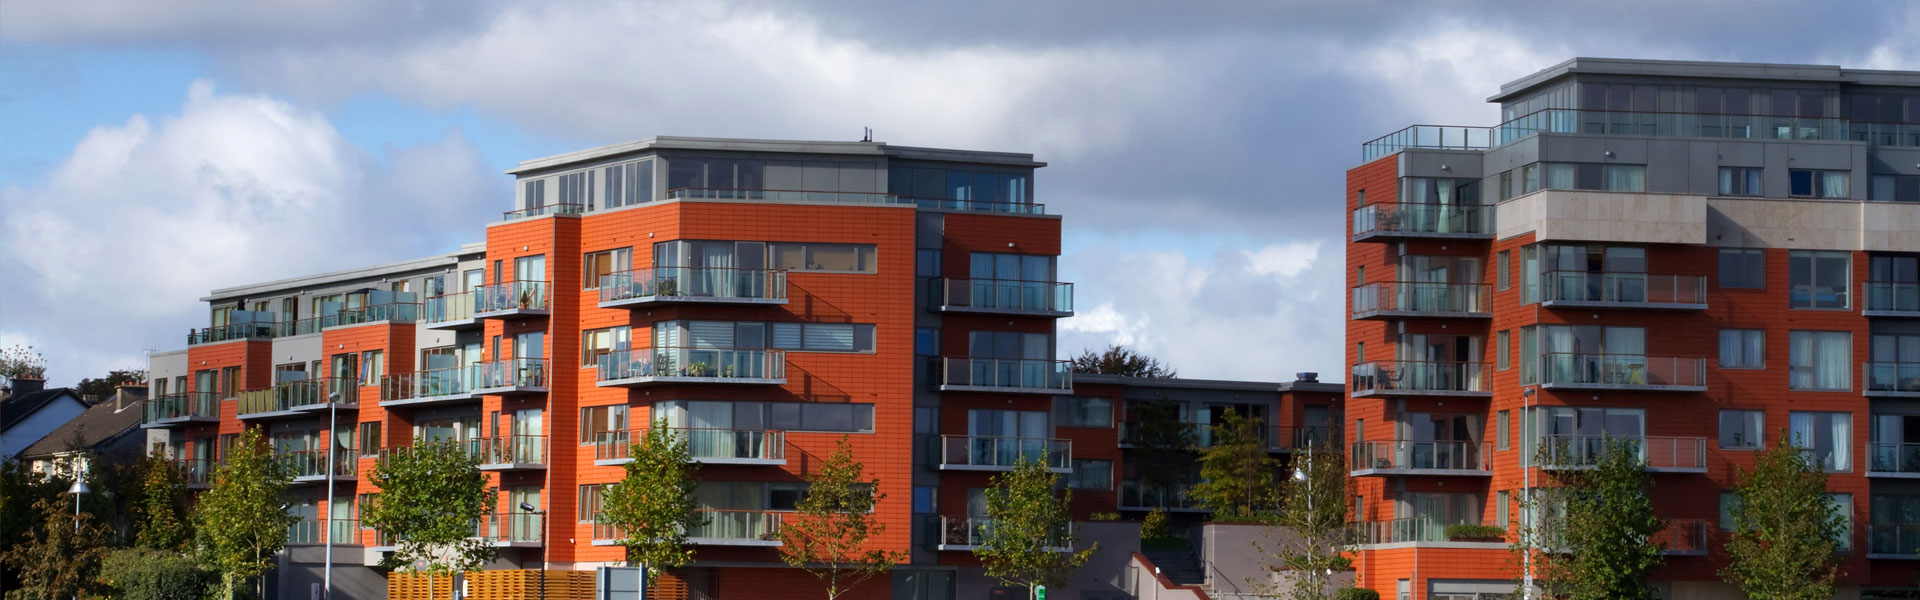 professional Commercial property management in Killenagh